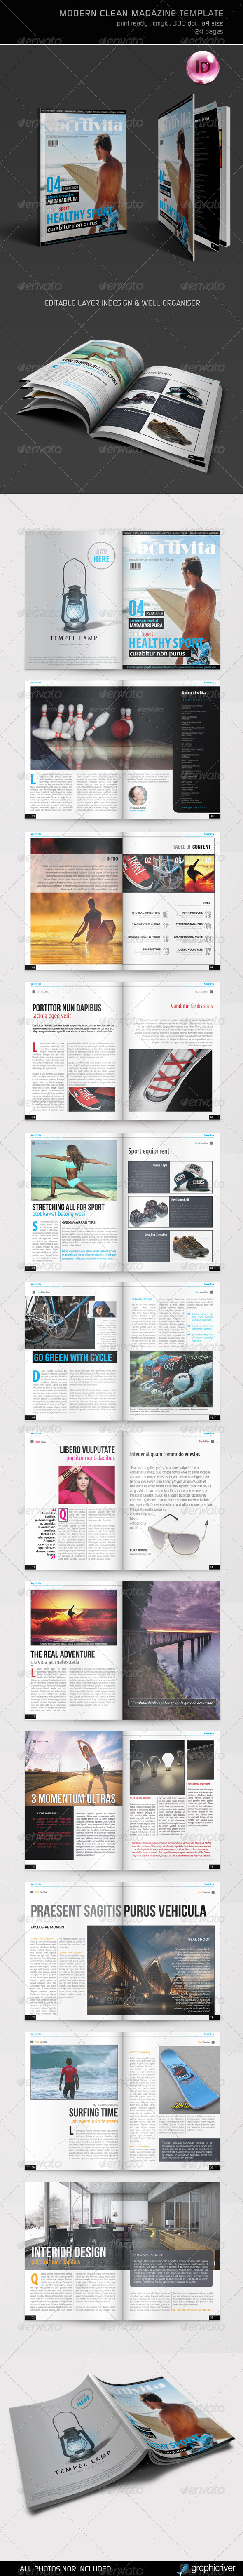 Modern Clean Magazine Template - Magazines Print Templates